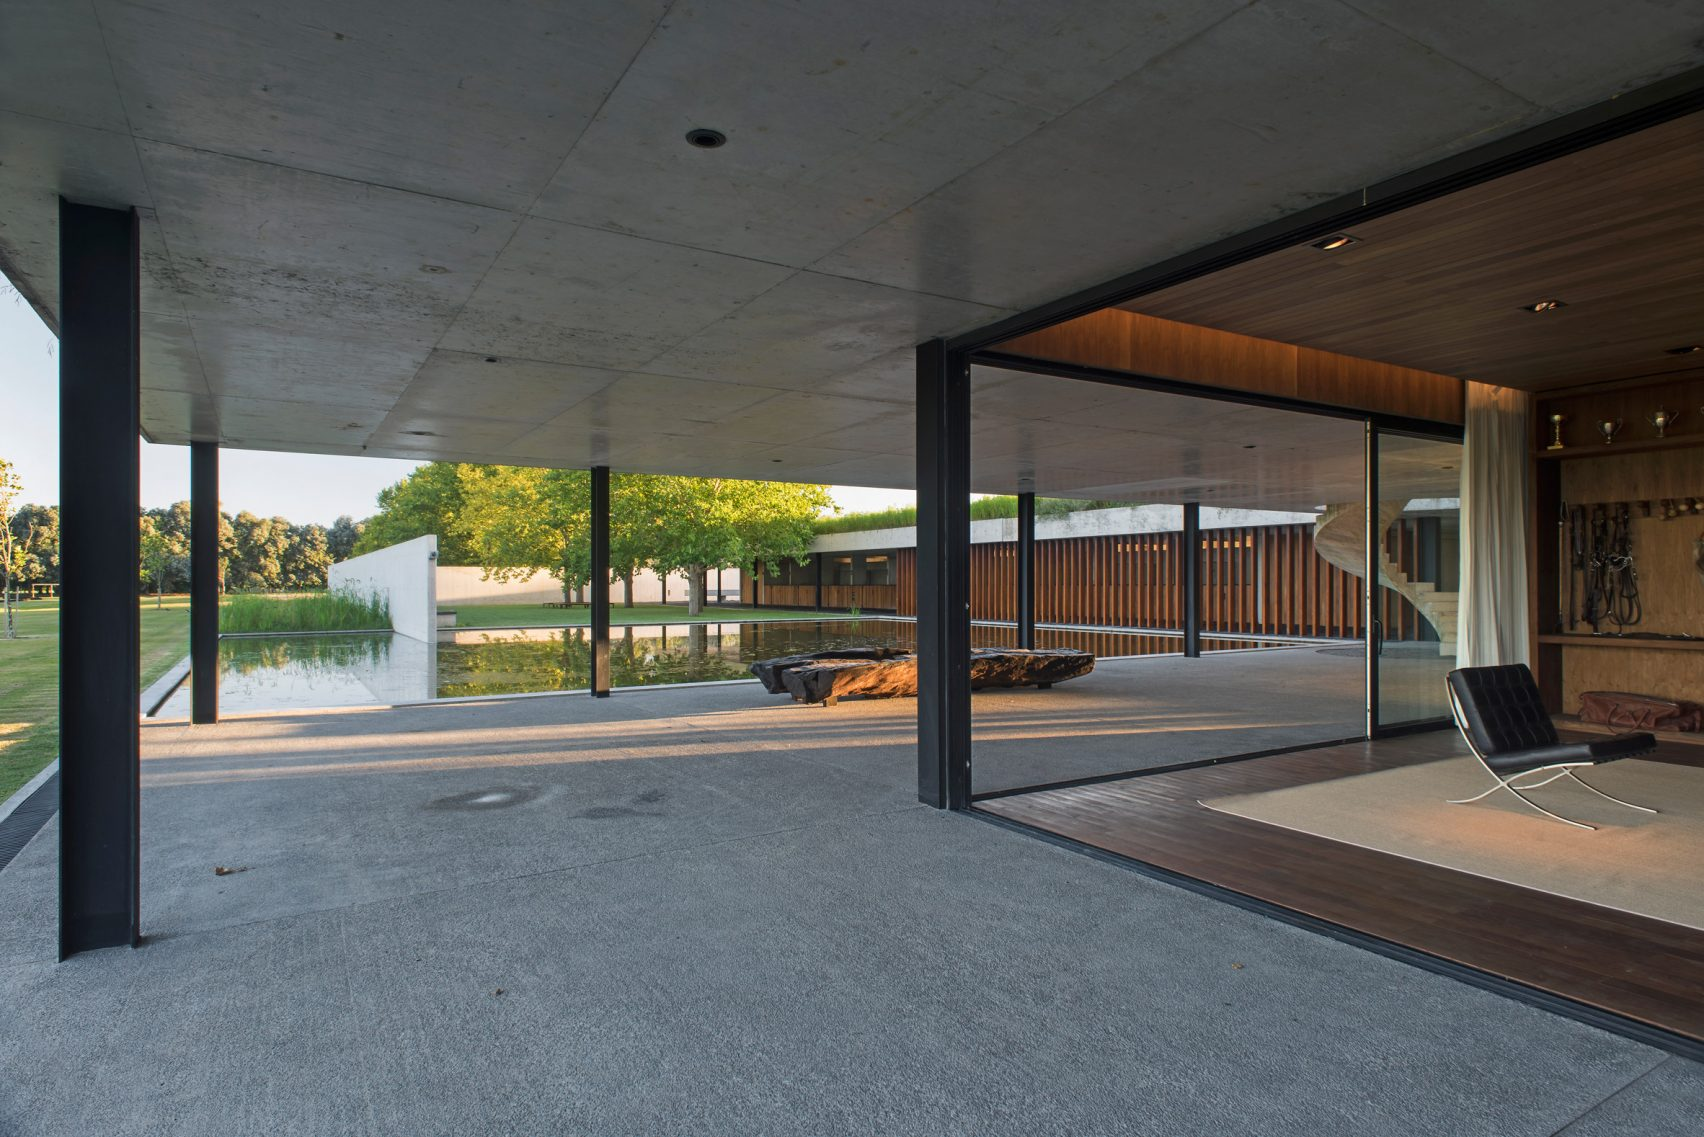 figueras-polo-stables-estudio-ramos-architecture-public-and-leisure_dezeen_2364_col_25-1704x1137.jpg